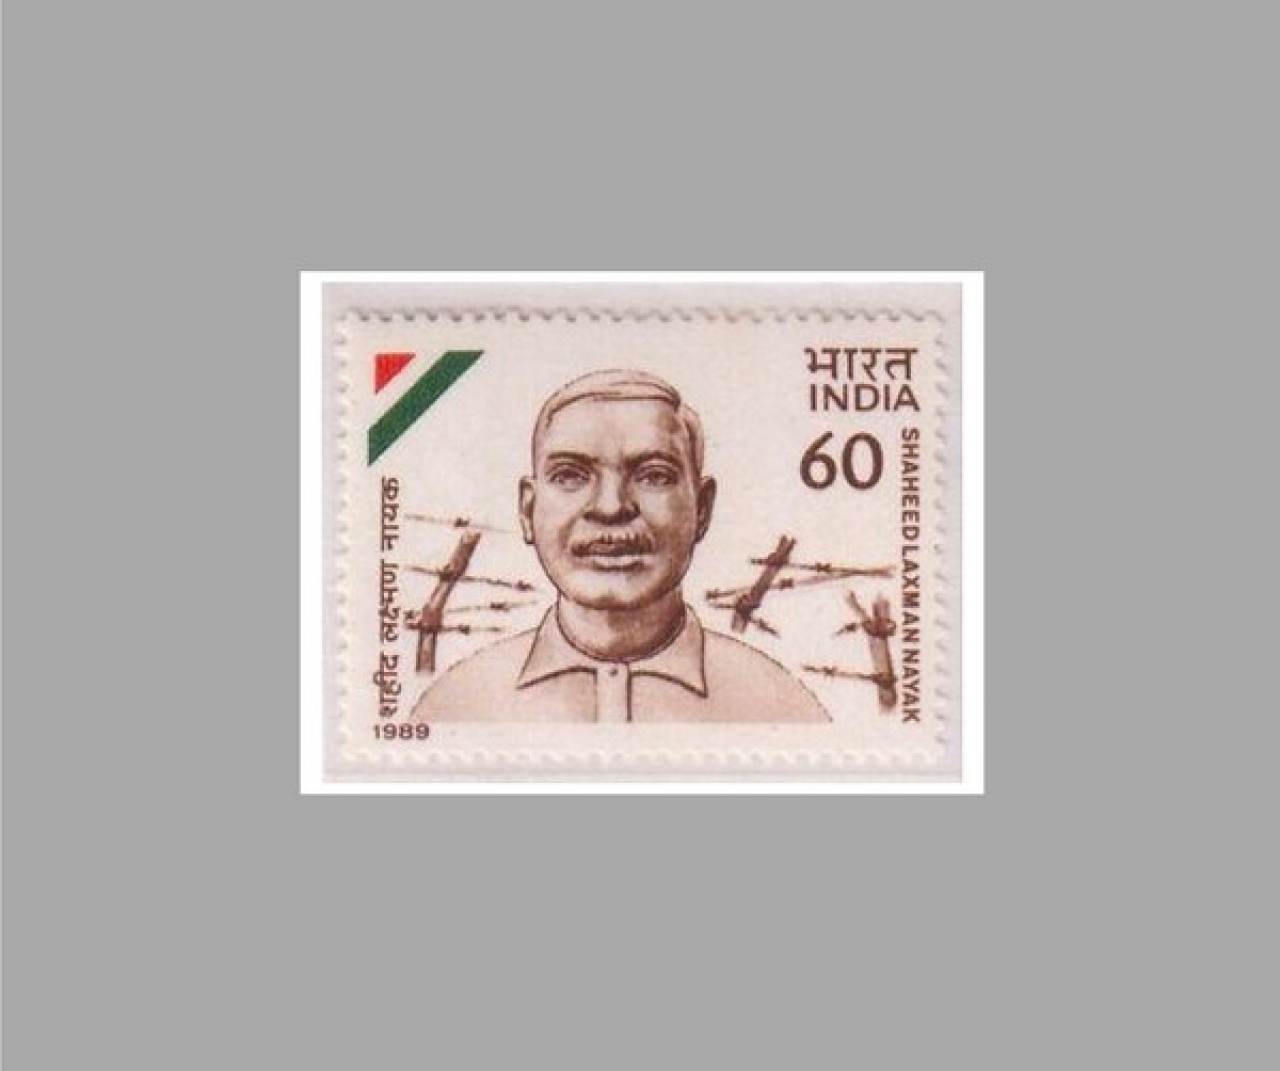 The stamp released by India Post on Shaheed Laxman Nayak in 1989